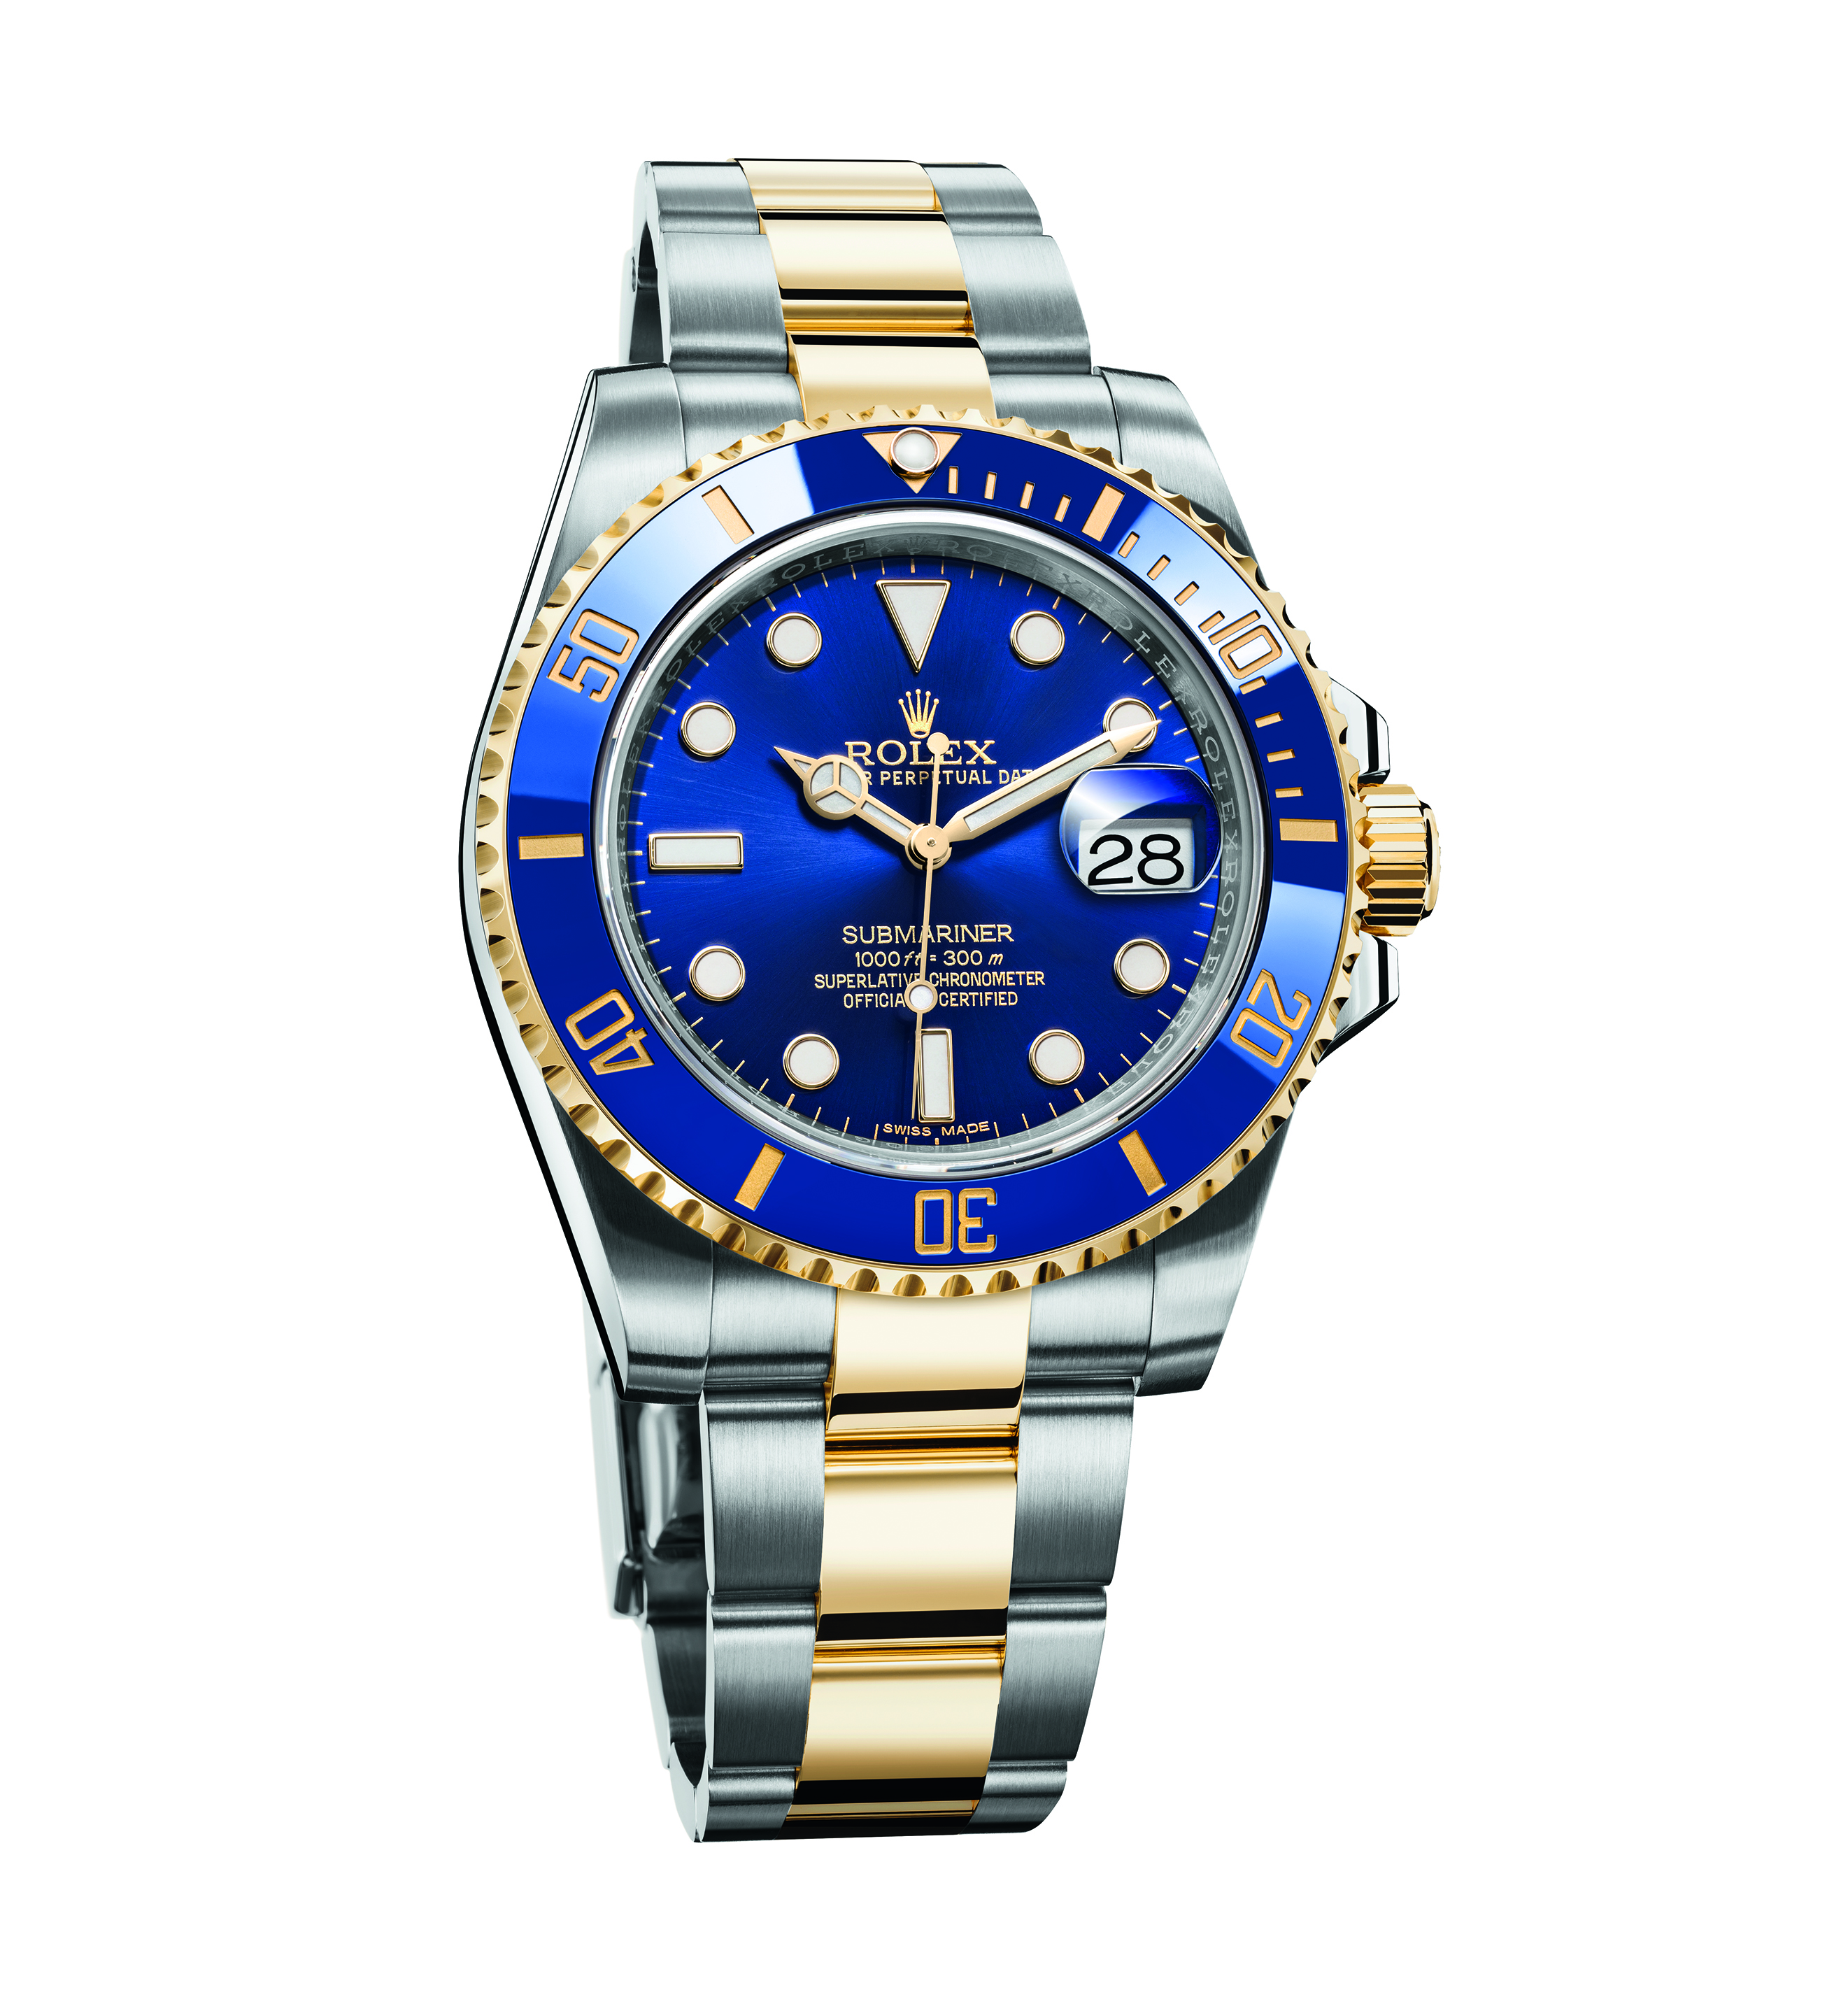 strong date from to most when and at wearing land wear the features on ten submariner sailing top beautiful watches sea cartier seen be ybw rolex